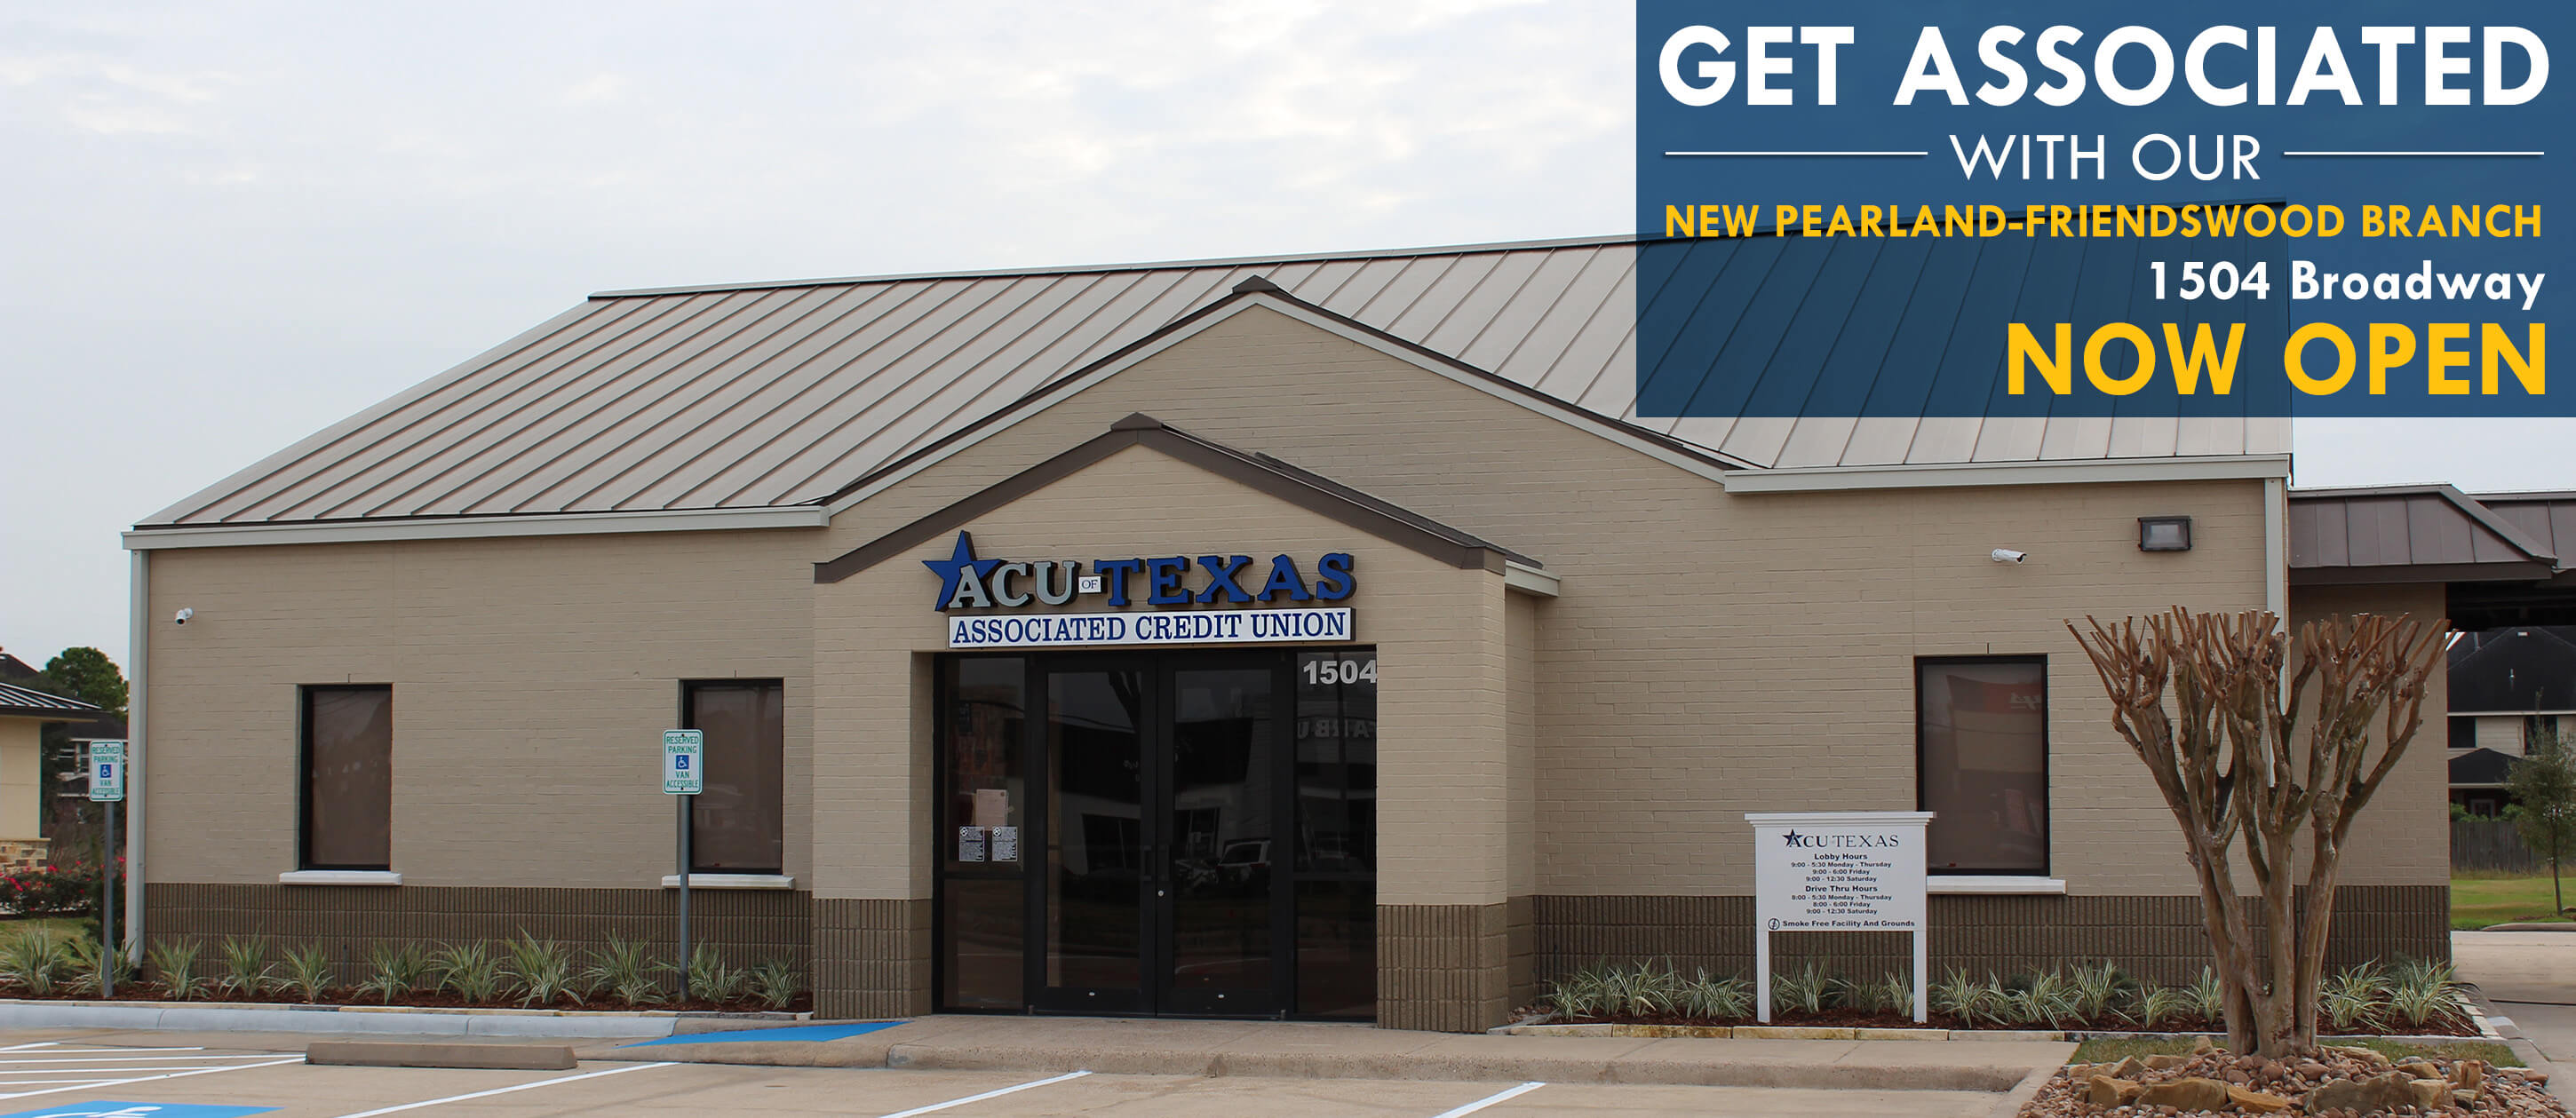 New Pearland-Friendswood Branch Now Open